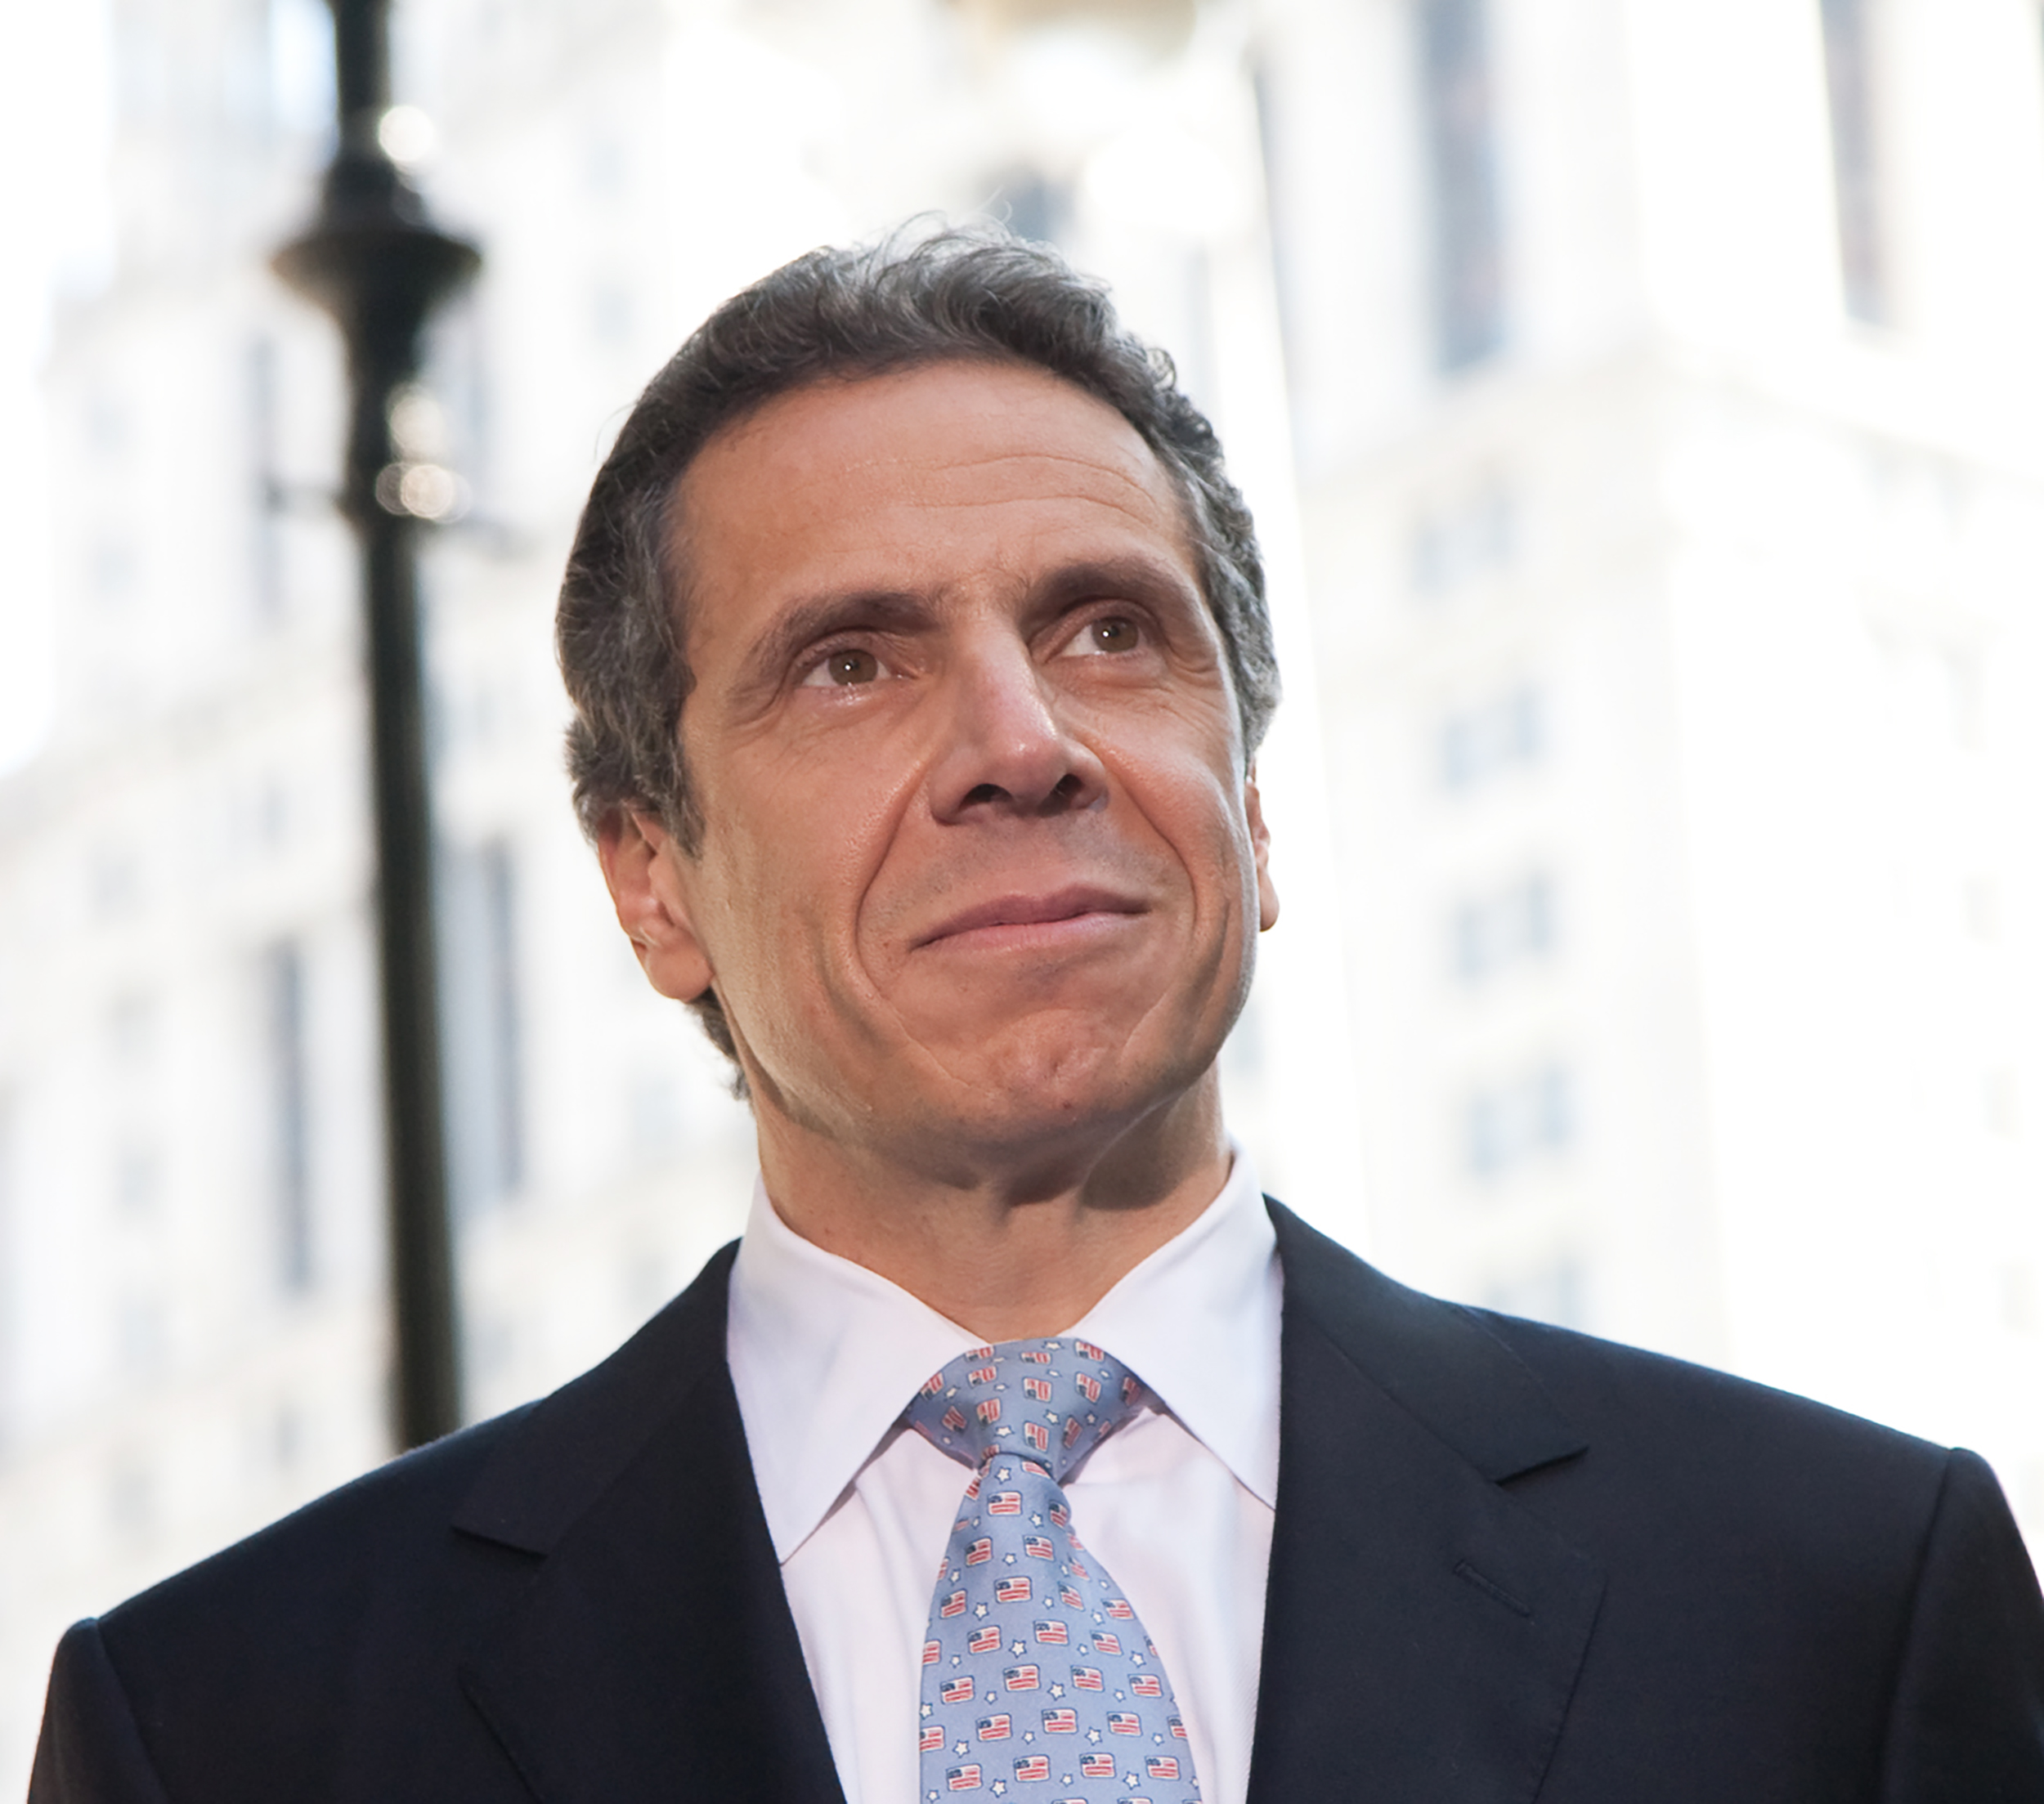 New York Gov. Andrew Cuomo (pictured above) signed the Reproductive Health Act on Jan. 22, which protects women's rights to abortion. Despite backlash, the act is critical to ensuring the safety of pregnant women and should expand nationwide (Pat Arnow/Creative commons).